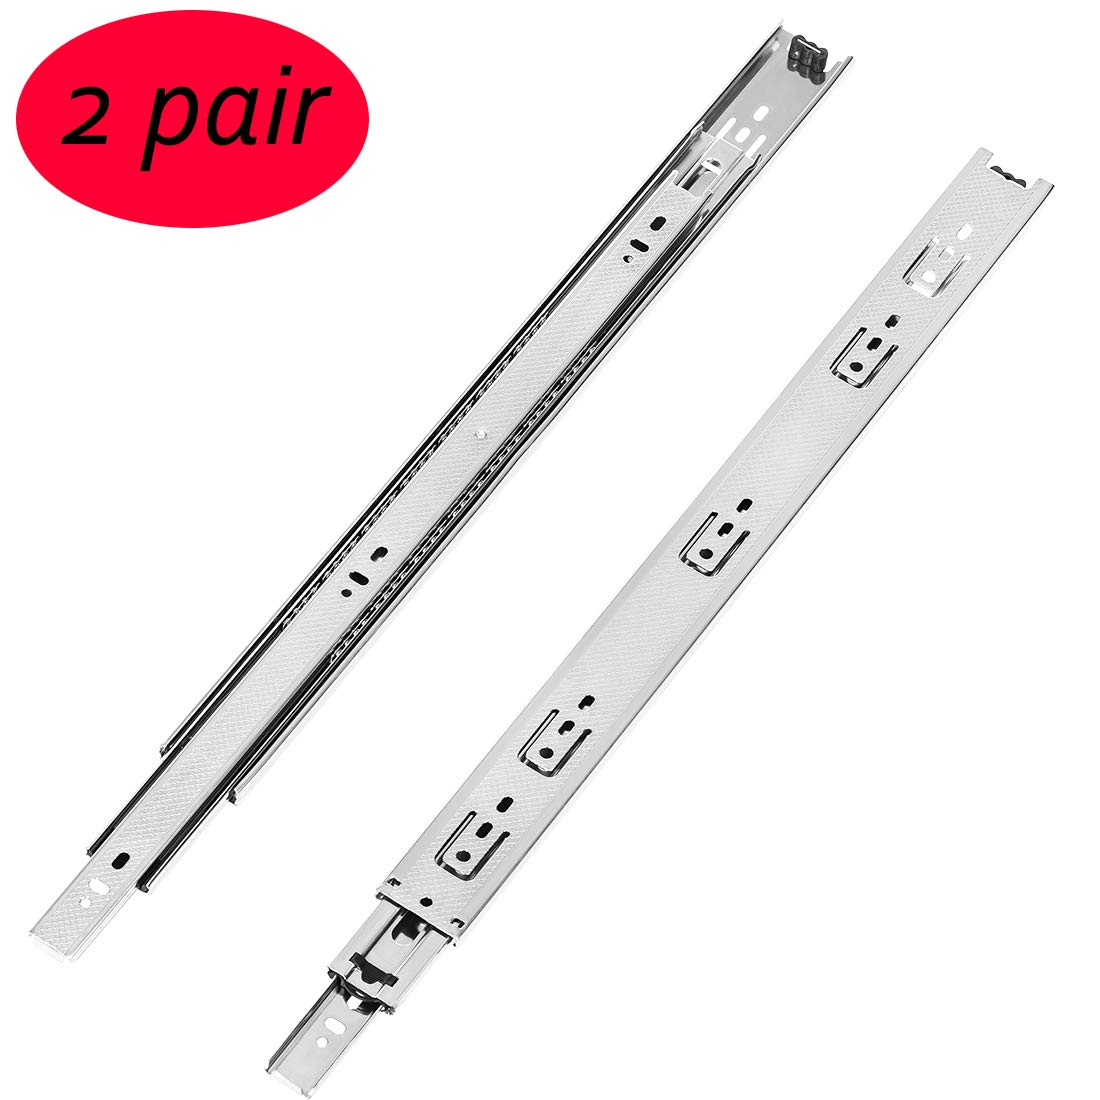 2 Pair of 22 Inch Full Extension Heavy Duty Drawer Slides,Lubrication Steel Ball Bearing